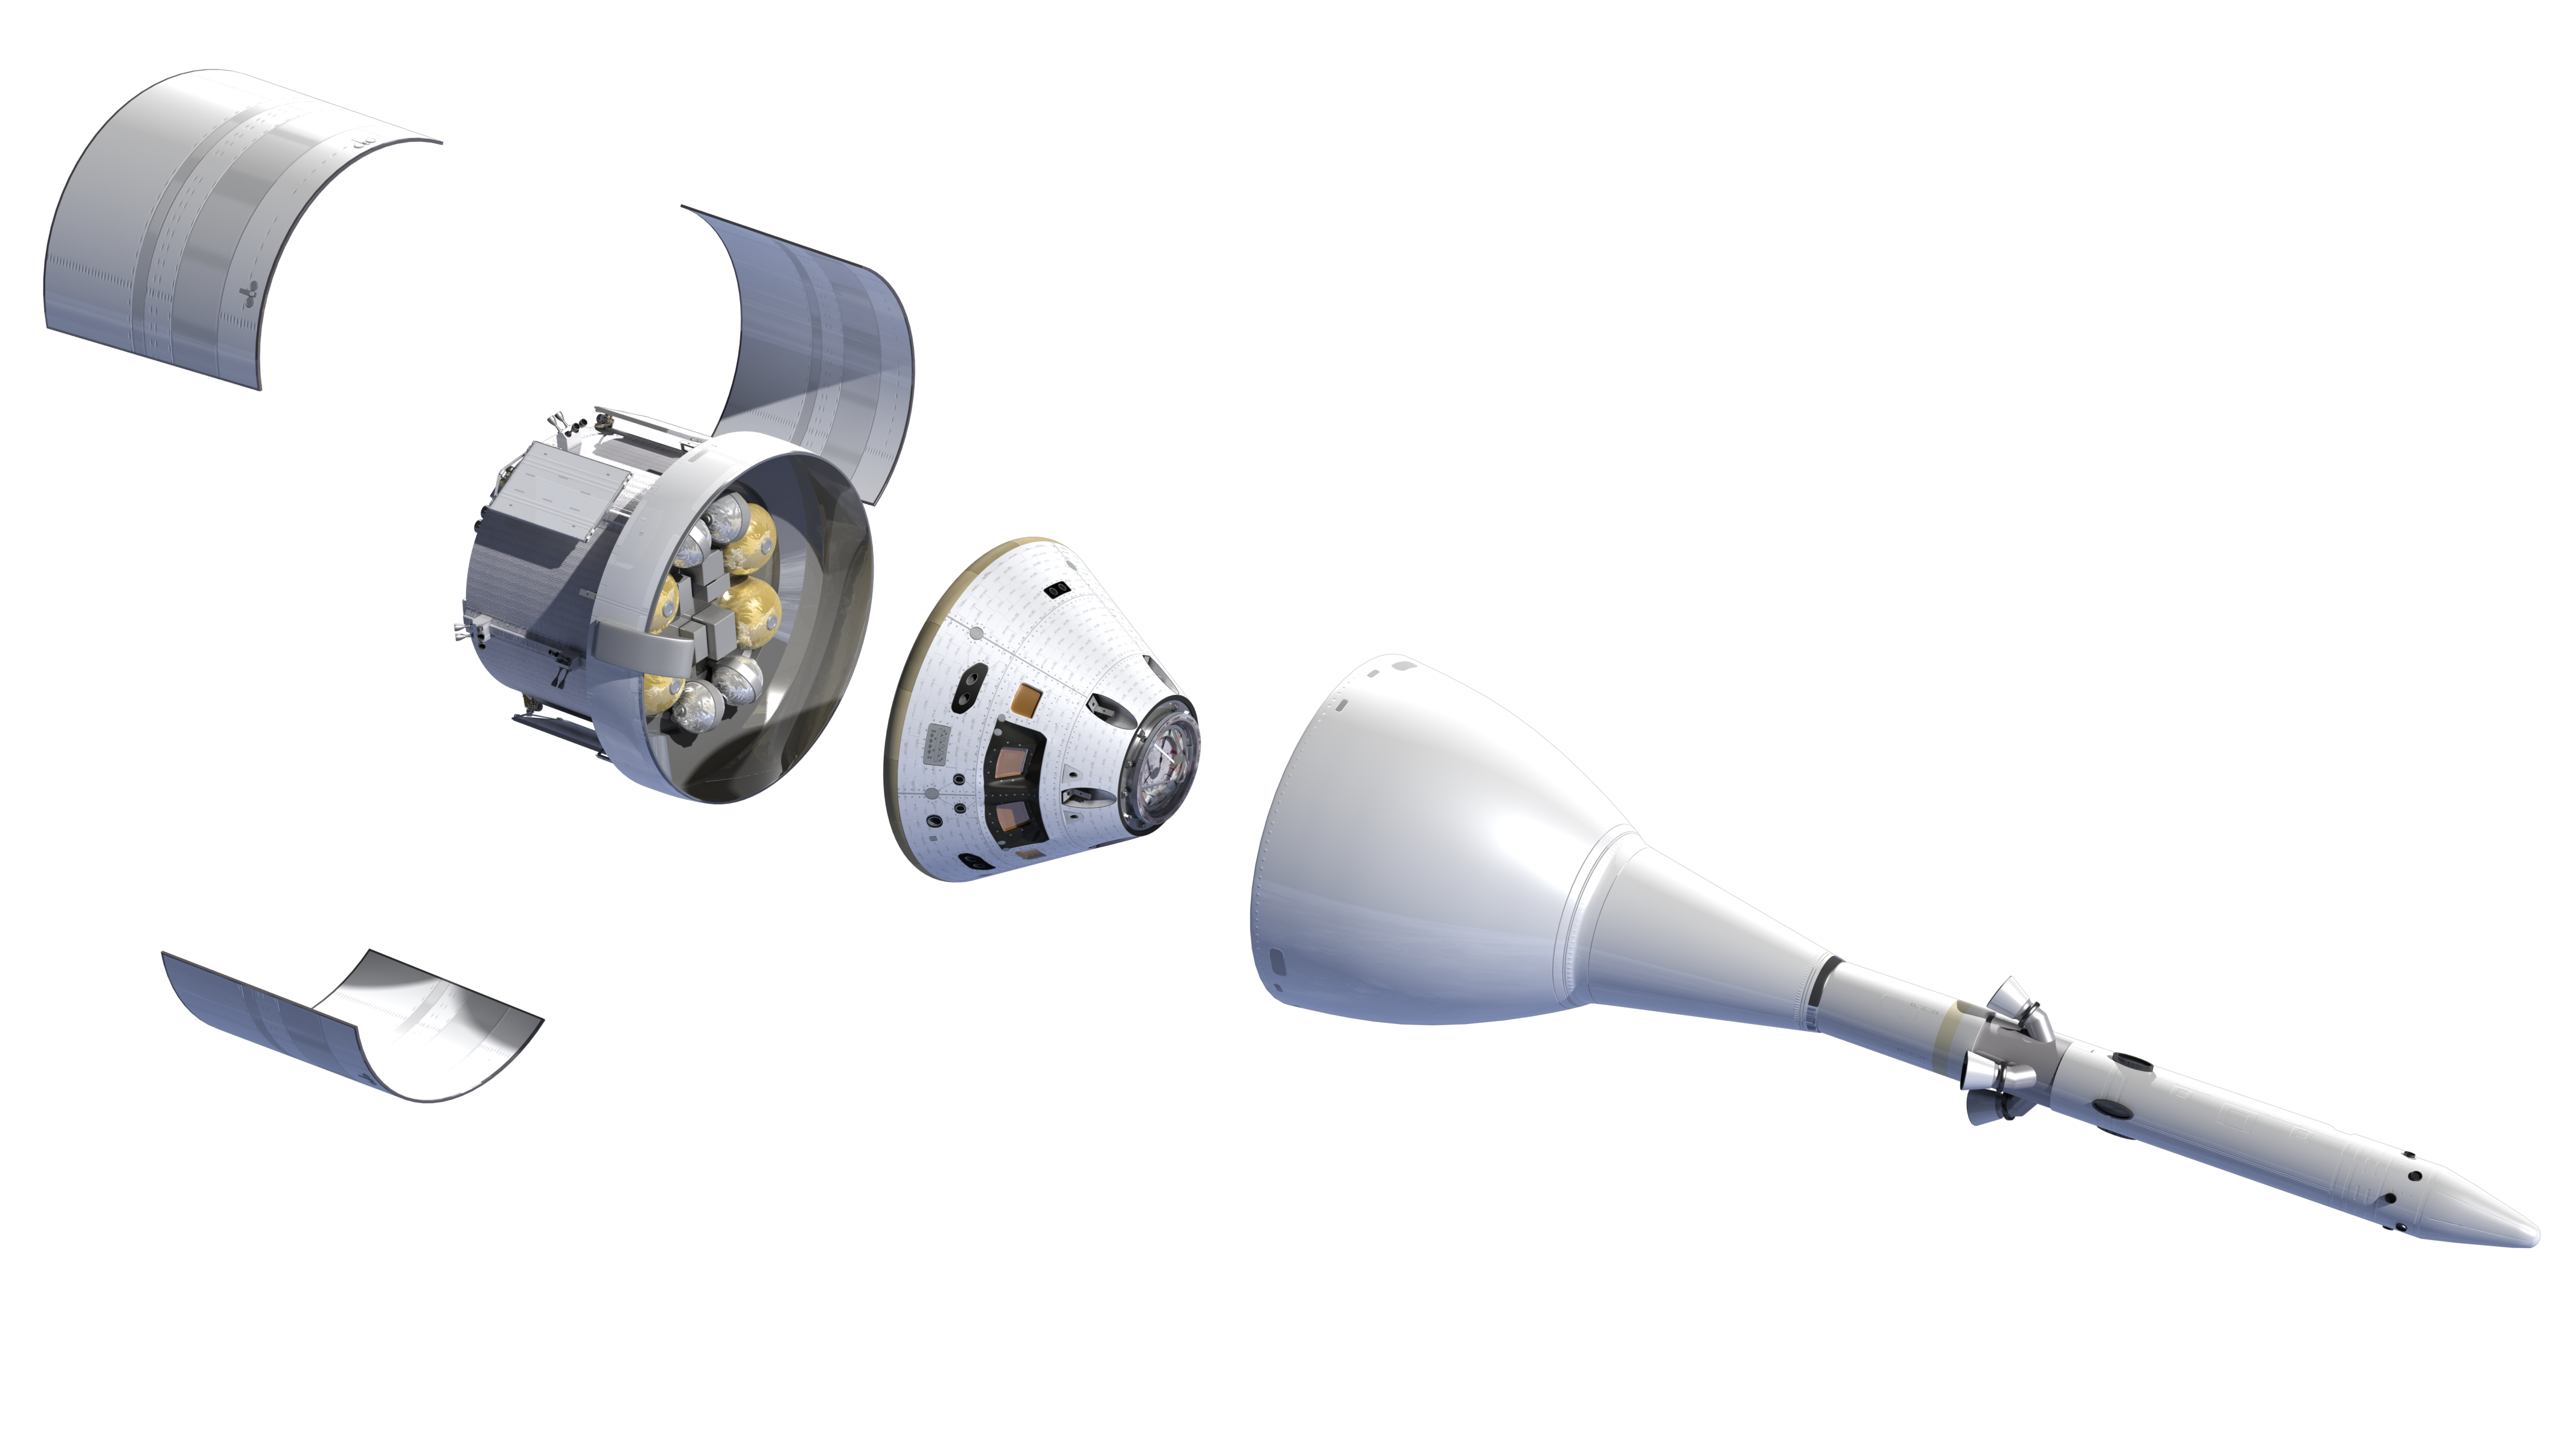 orion spacecraft - photo #26